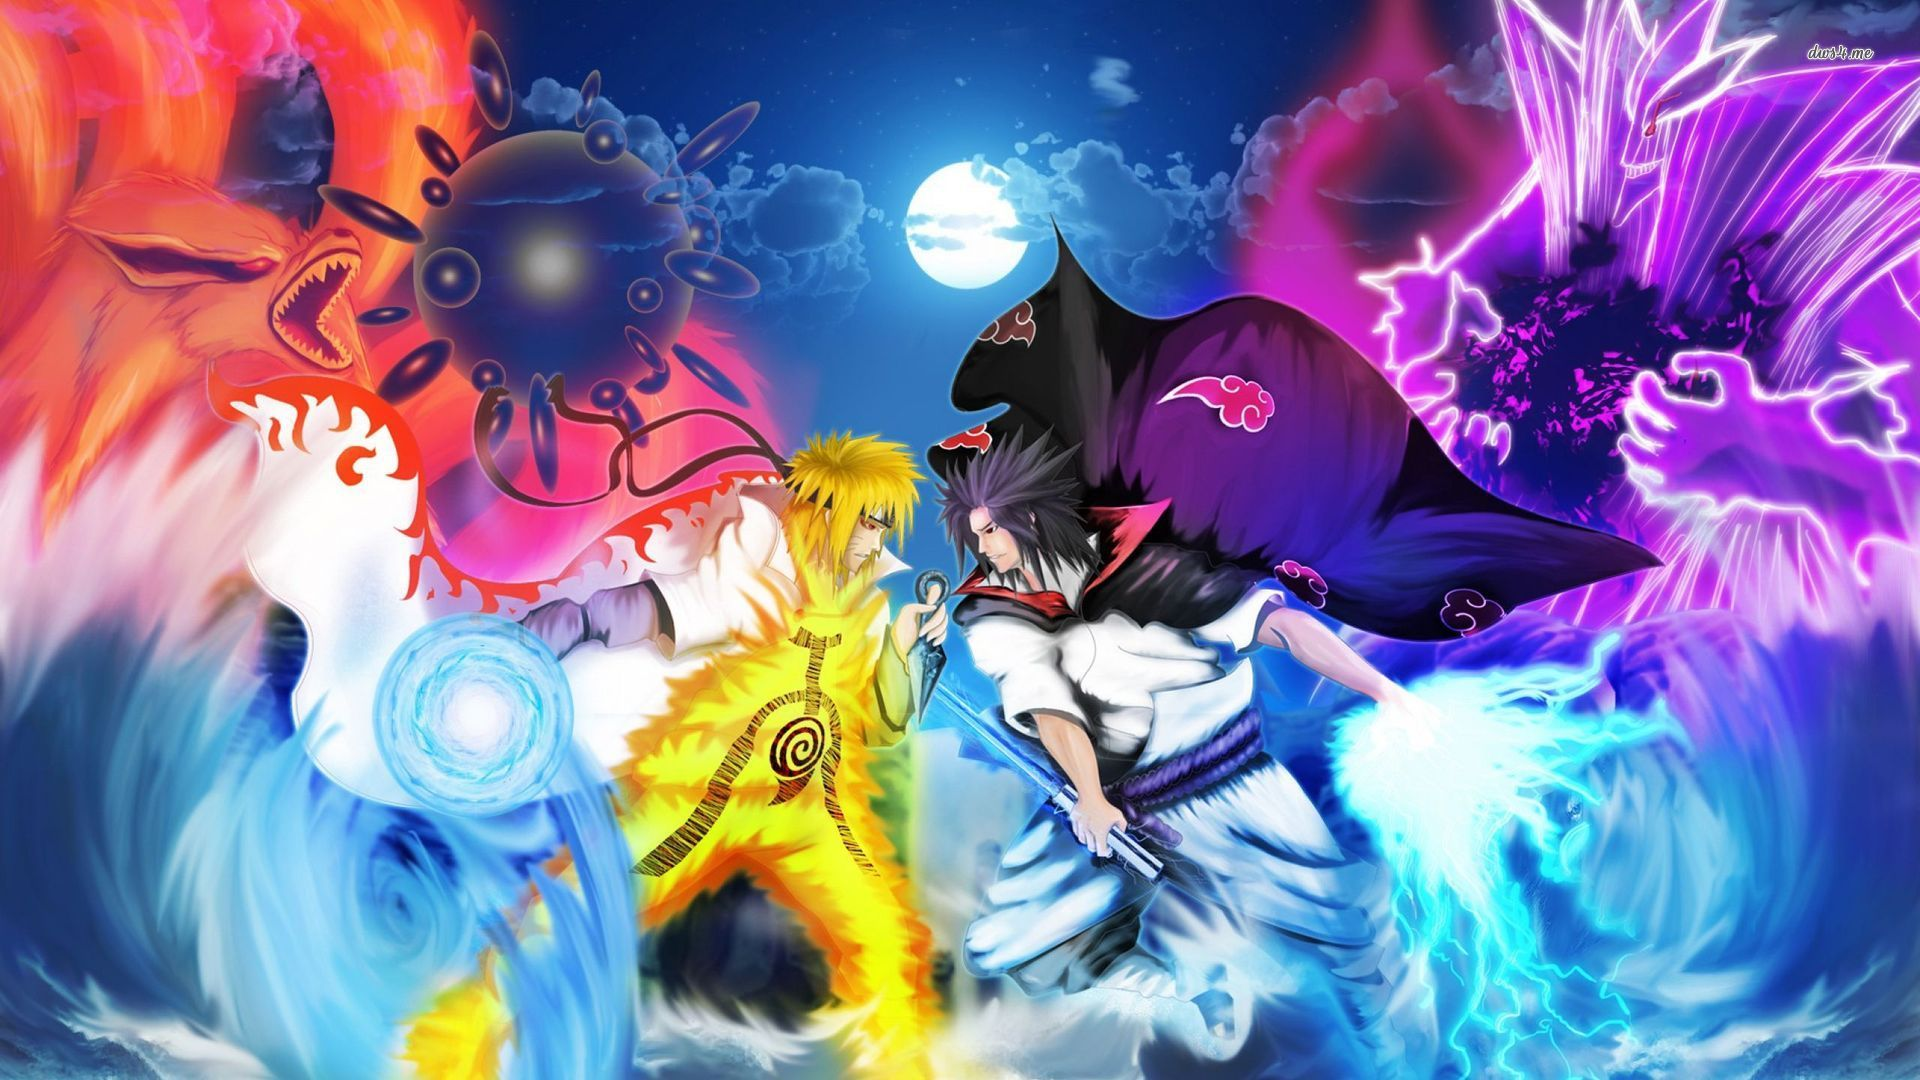 Download Naruto Shippuden Wallpaper pictures in high